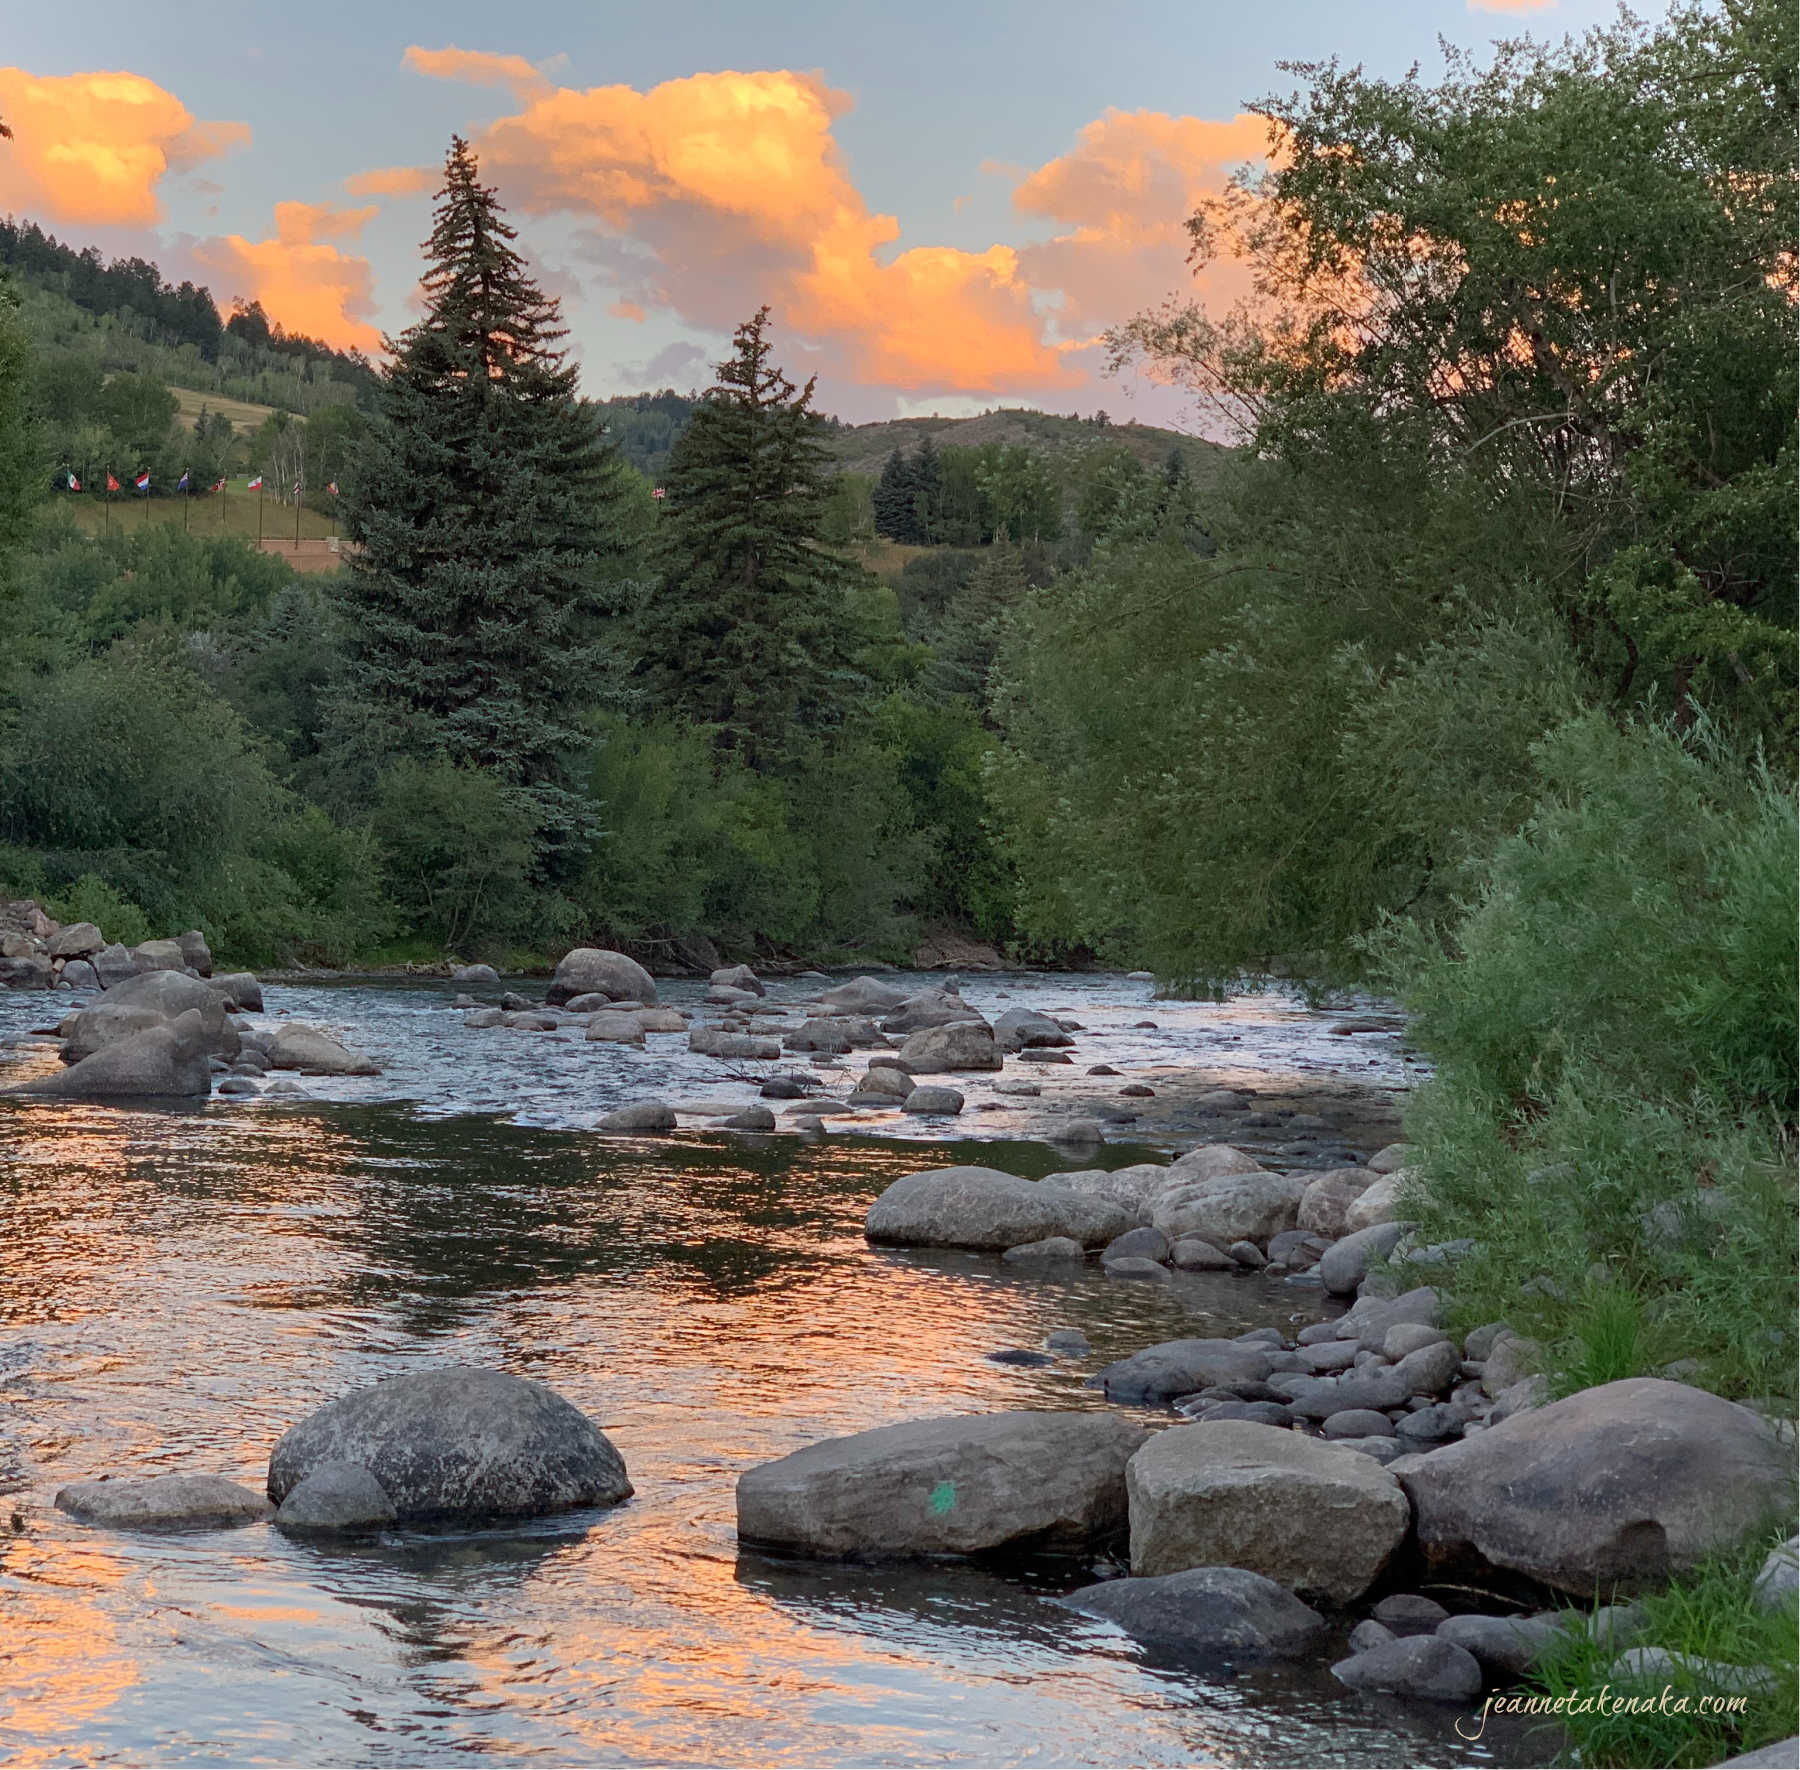 A river with sunrise-colored clouds reflecting on its surface, interrupted by rocks